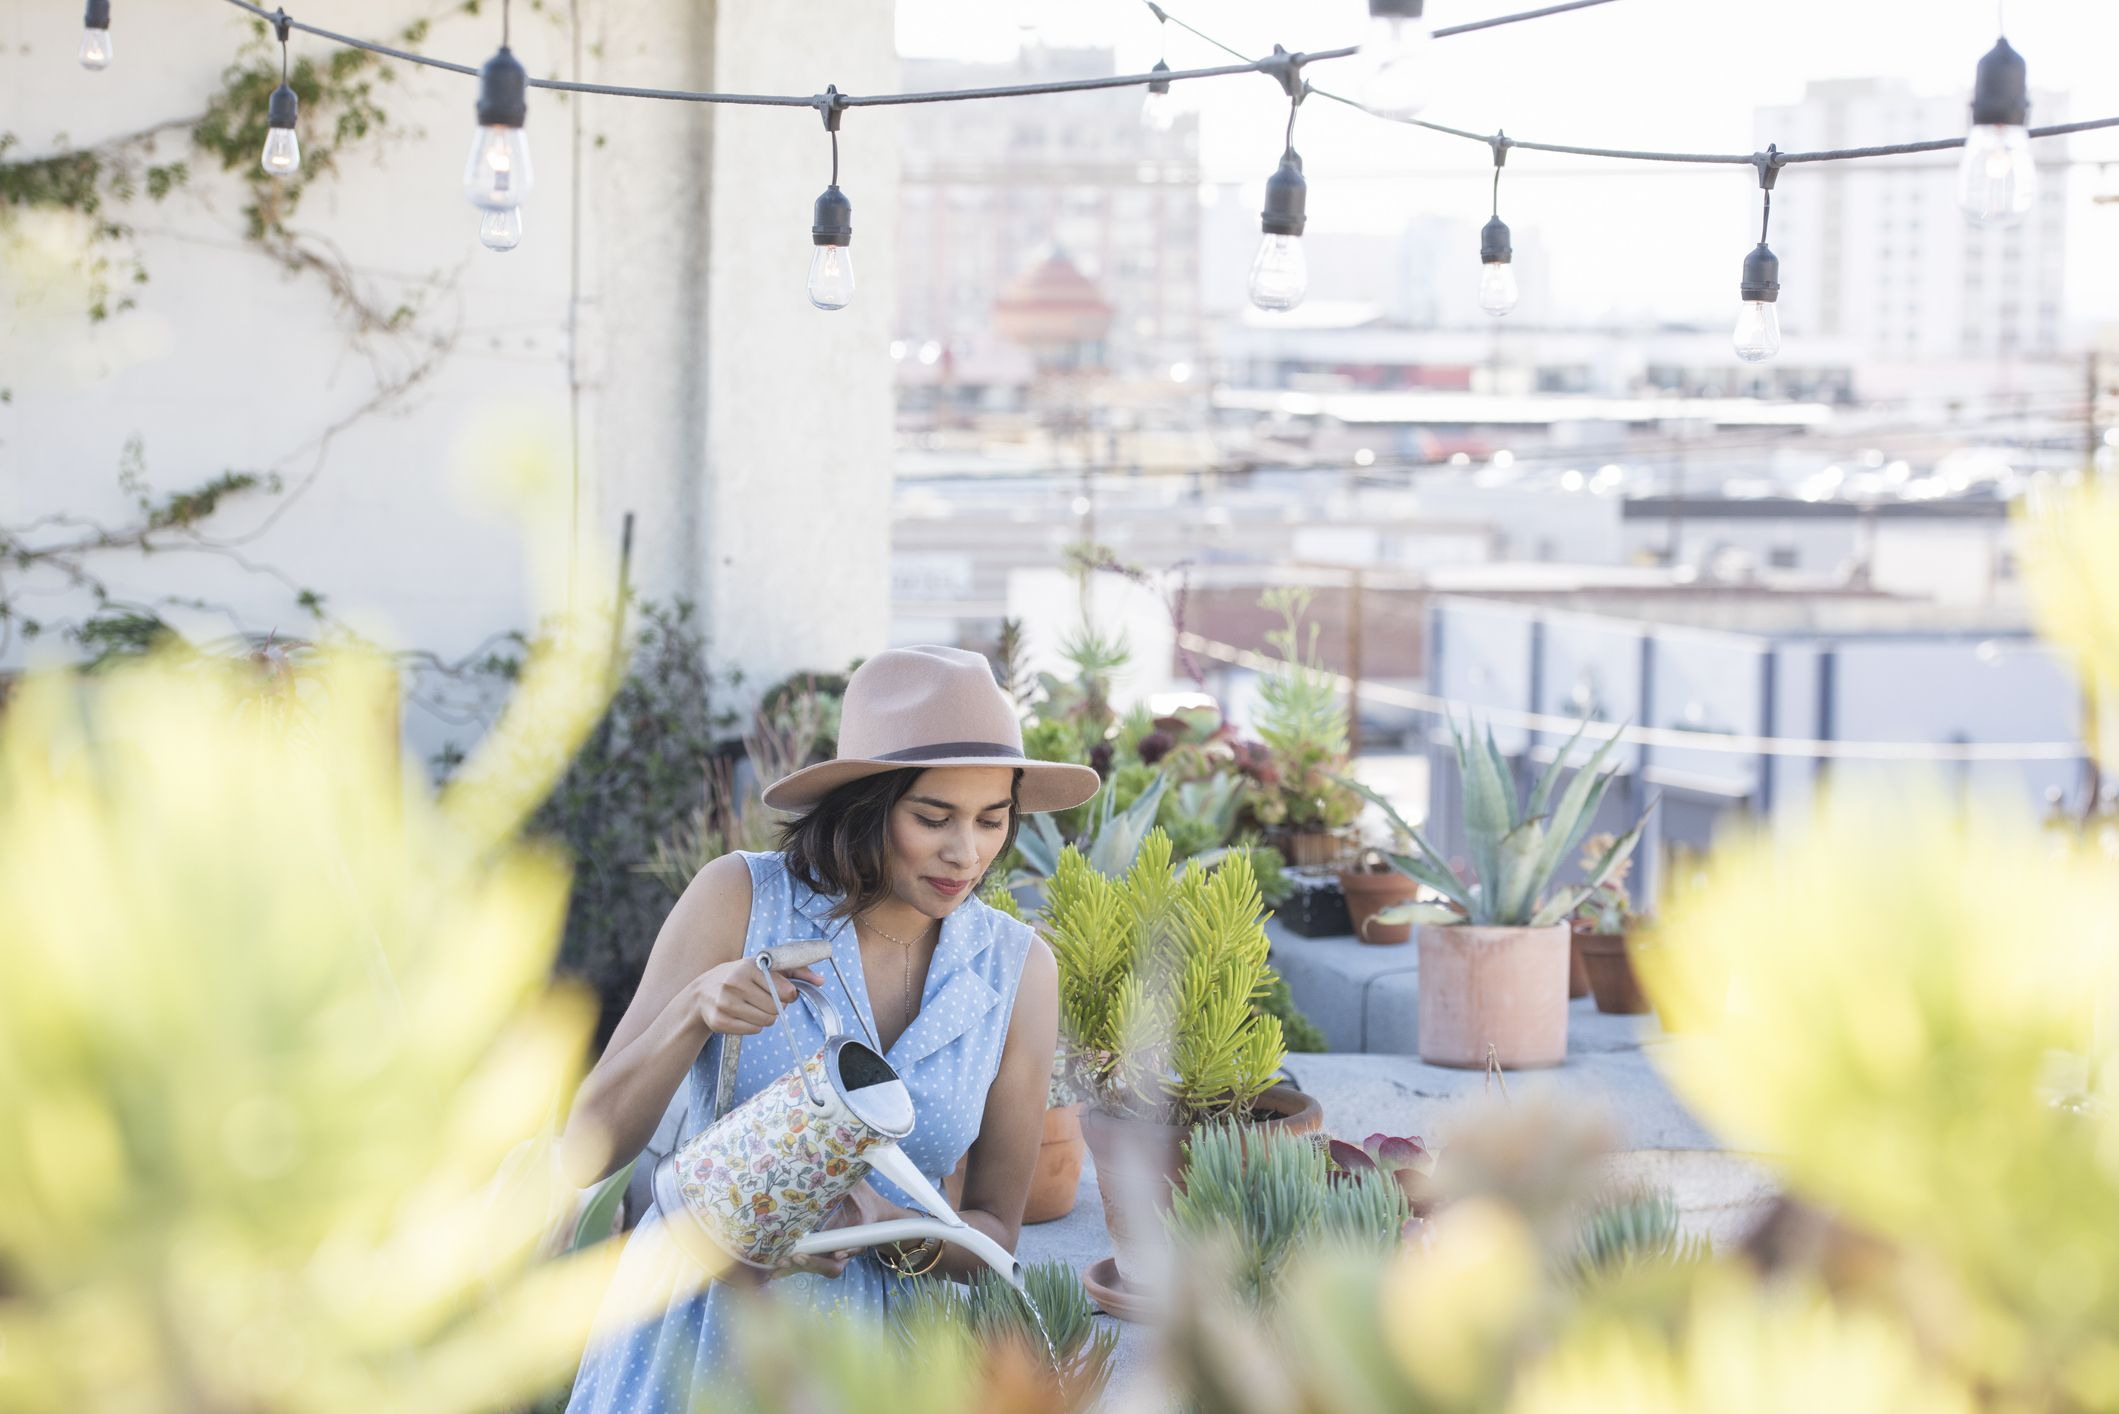 The Green Benefits Of A Roof Garden